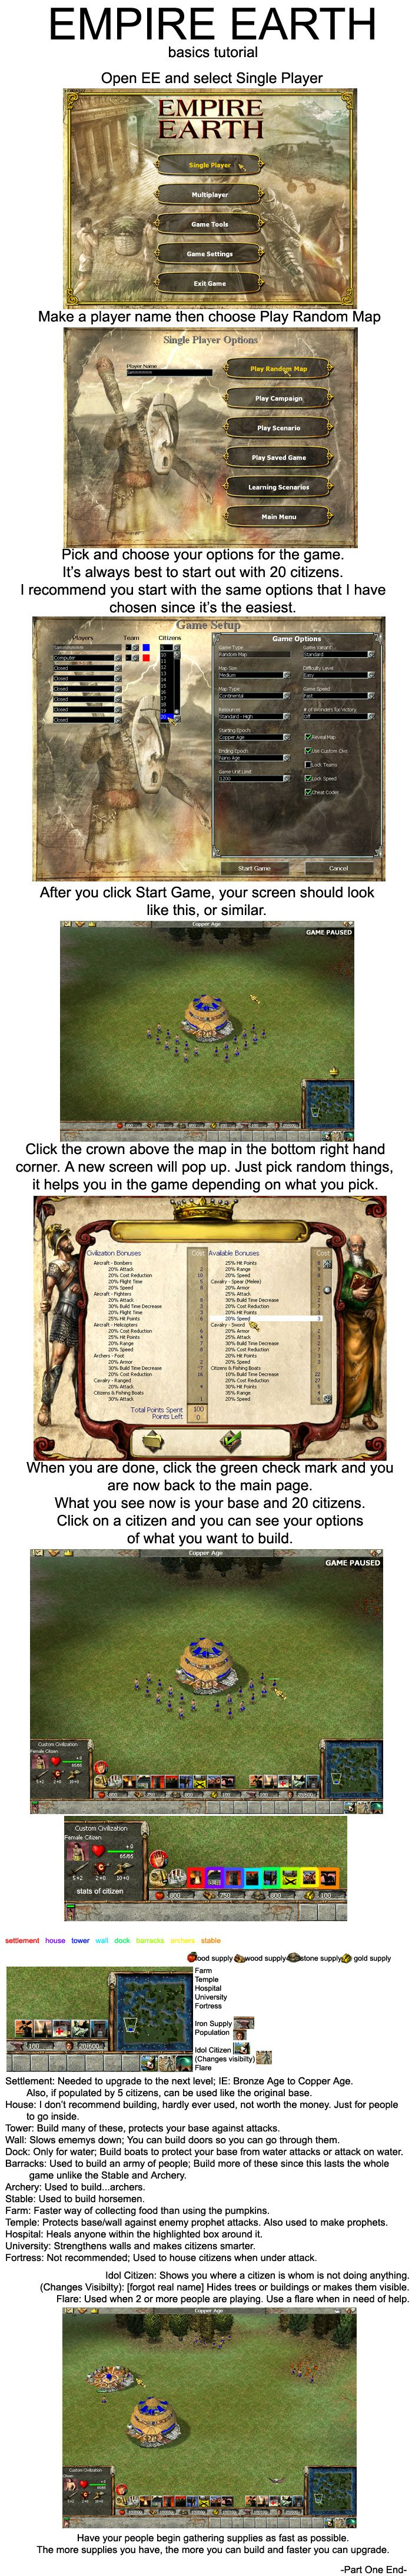 Empire Earth Tutorial P.1 by sambeawesome on DeviantArt